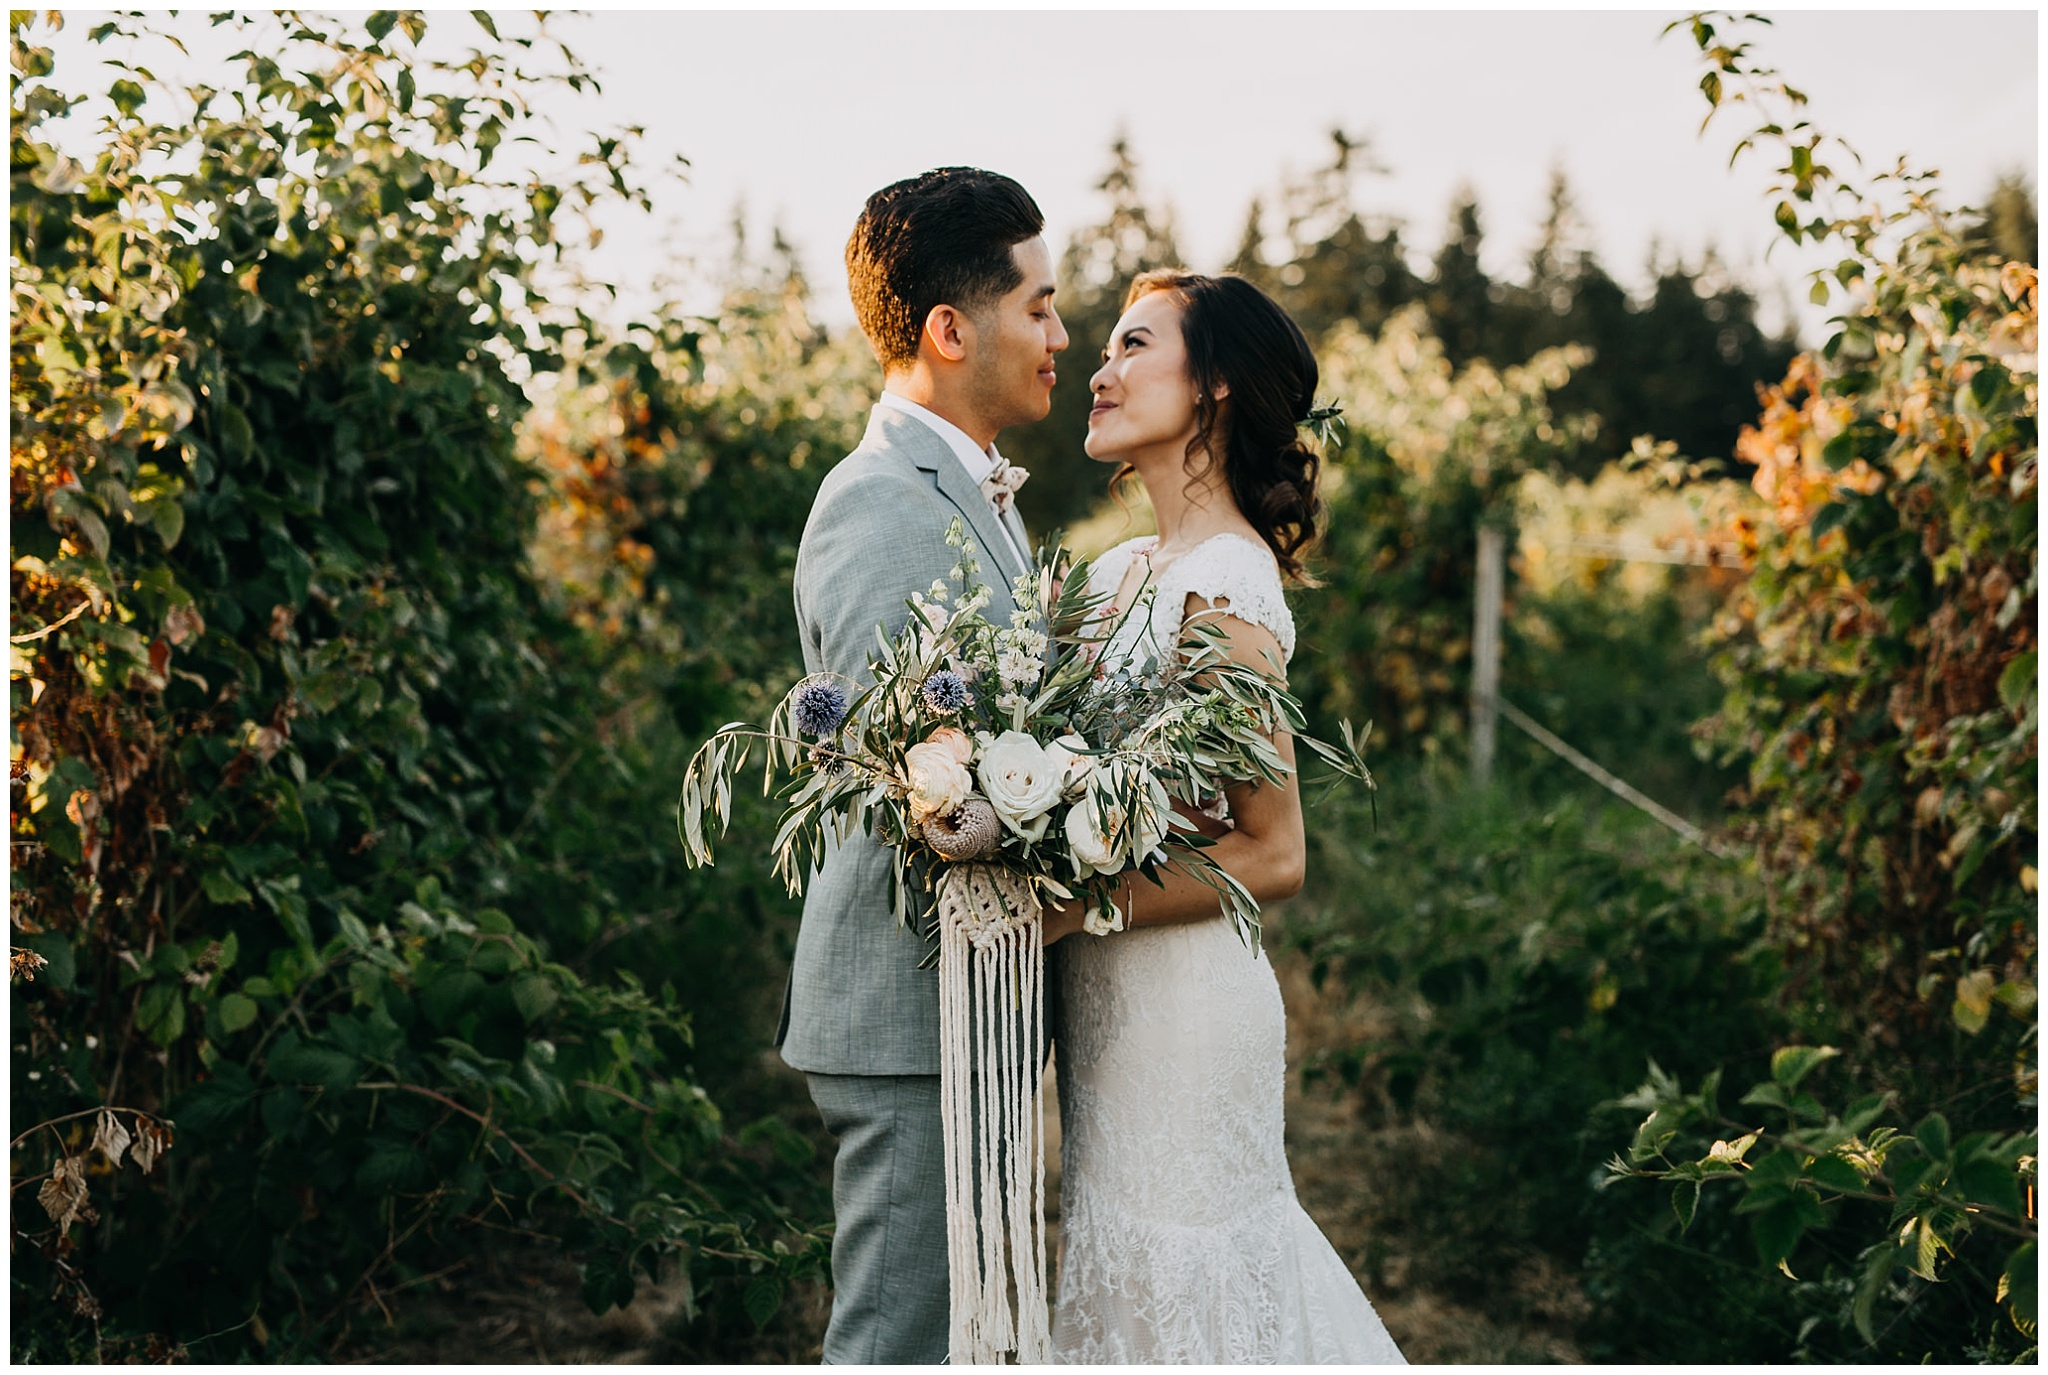 bride and groom sunset portrait in vineyard at krause berry farm wedding